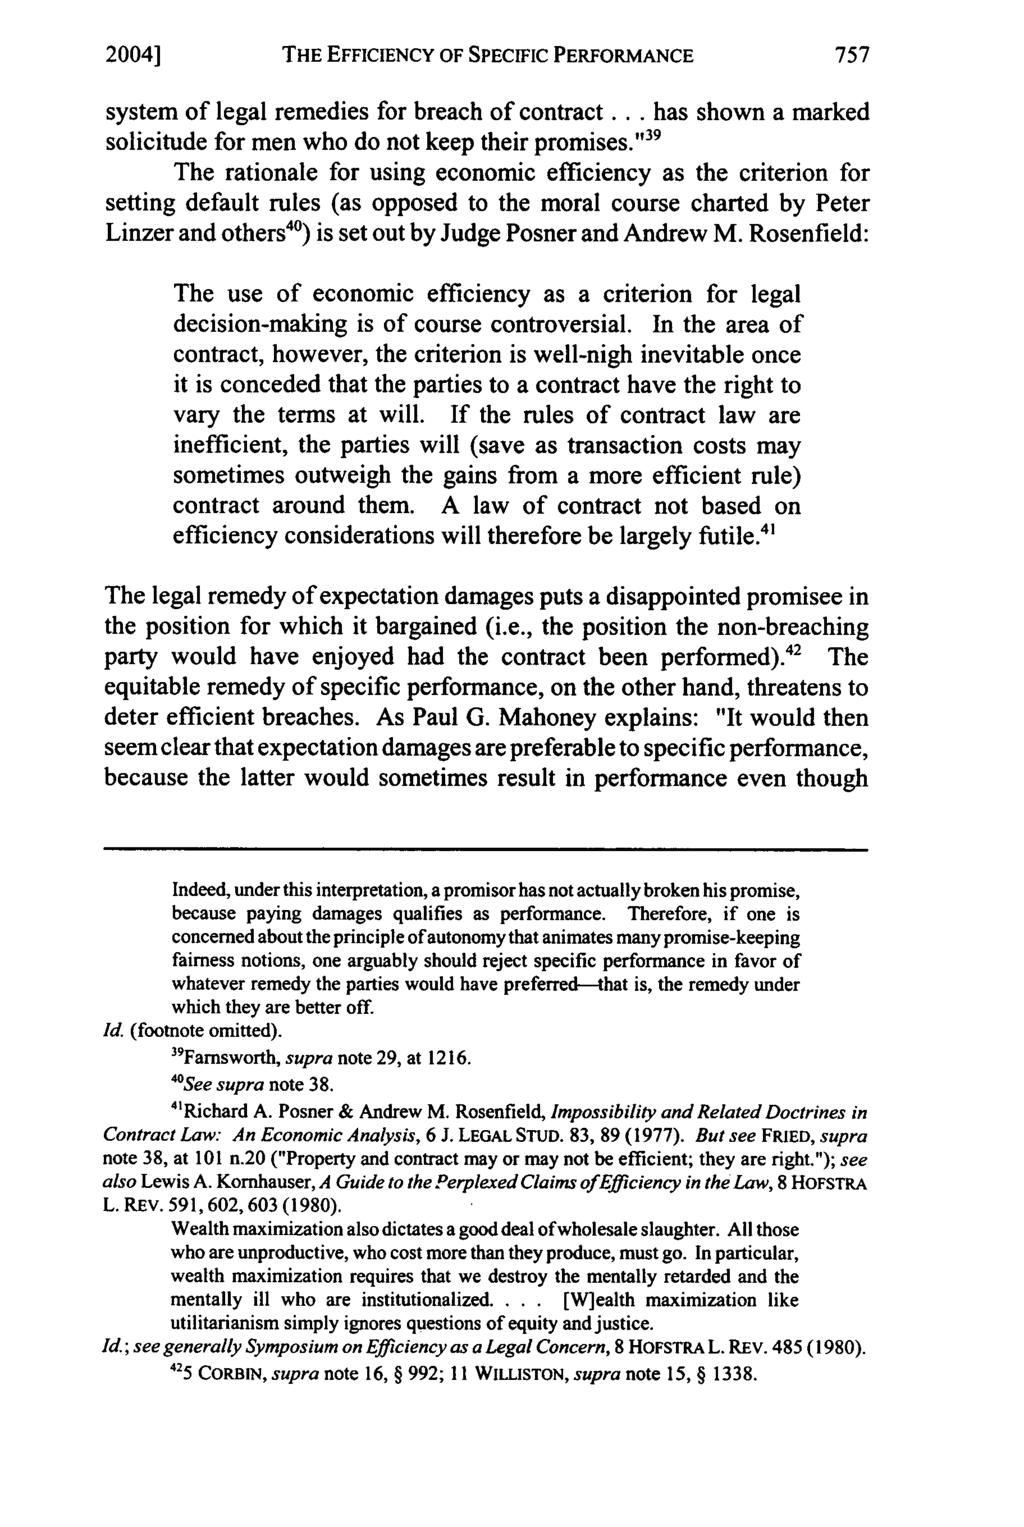 2004] THE EFFICIENCY OF SPECIFIC PERFORMANCE system of legal remedies for breach of contract... has shown a marked solicitude for men who do not keep their promises.